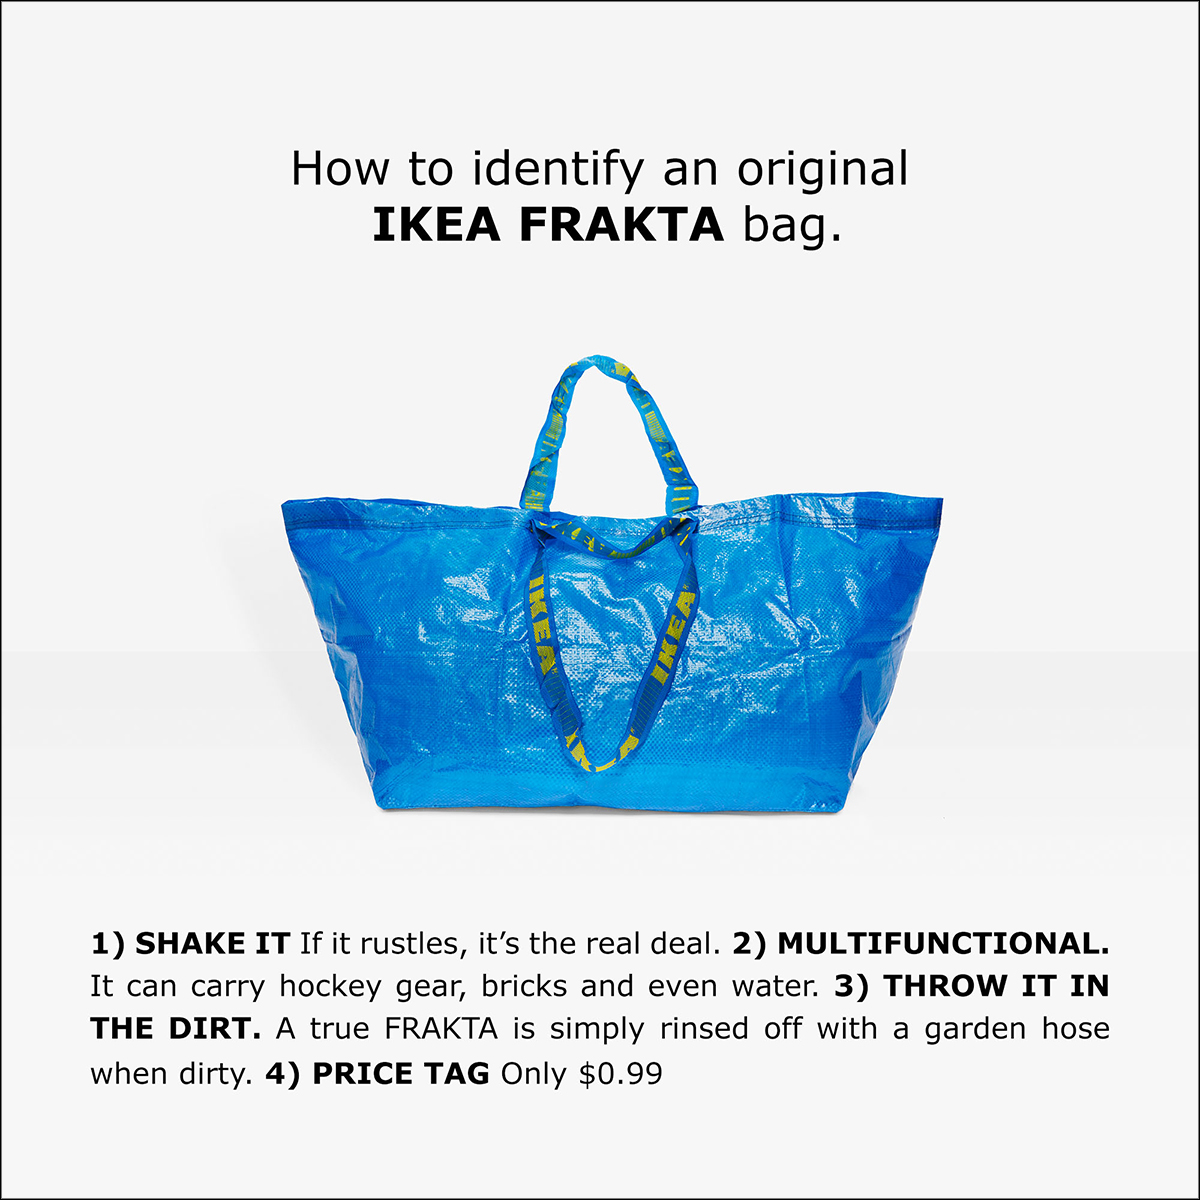 Ikea responds to Balenciaga's extra-large tote bag with joke ad